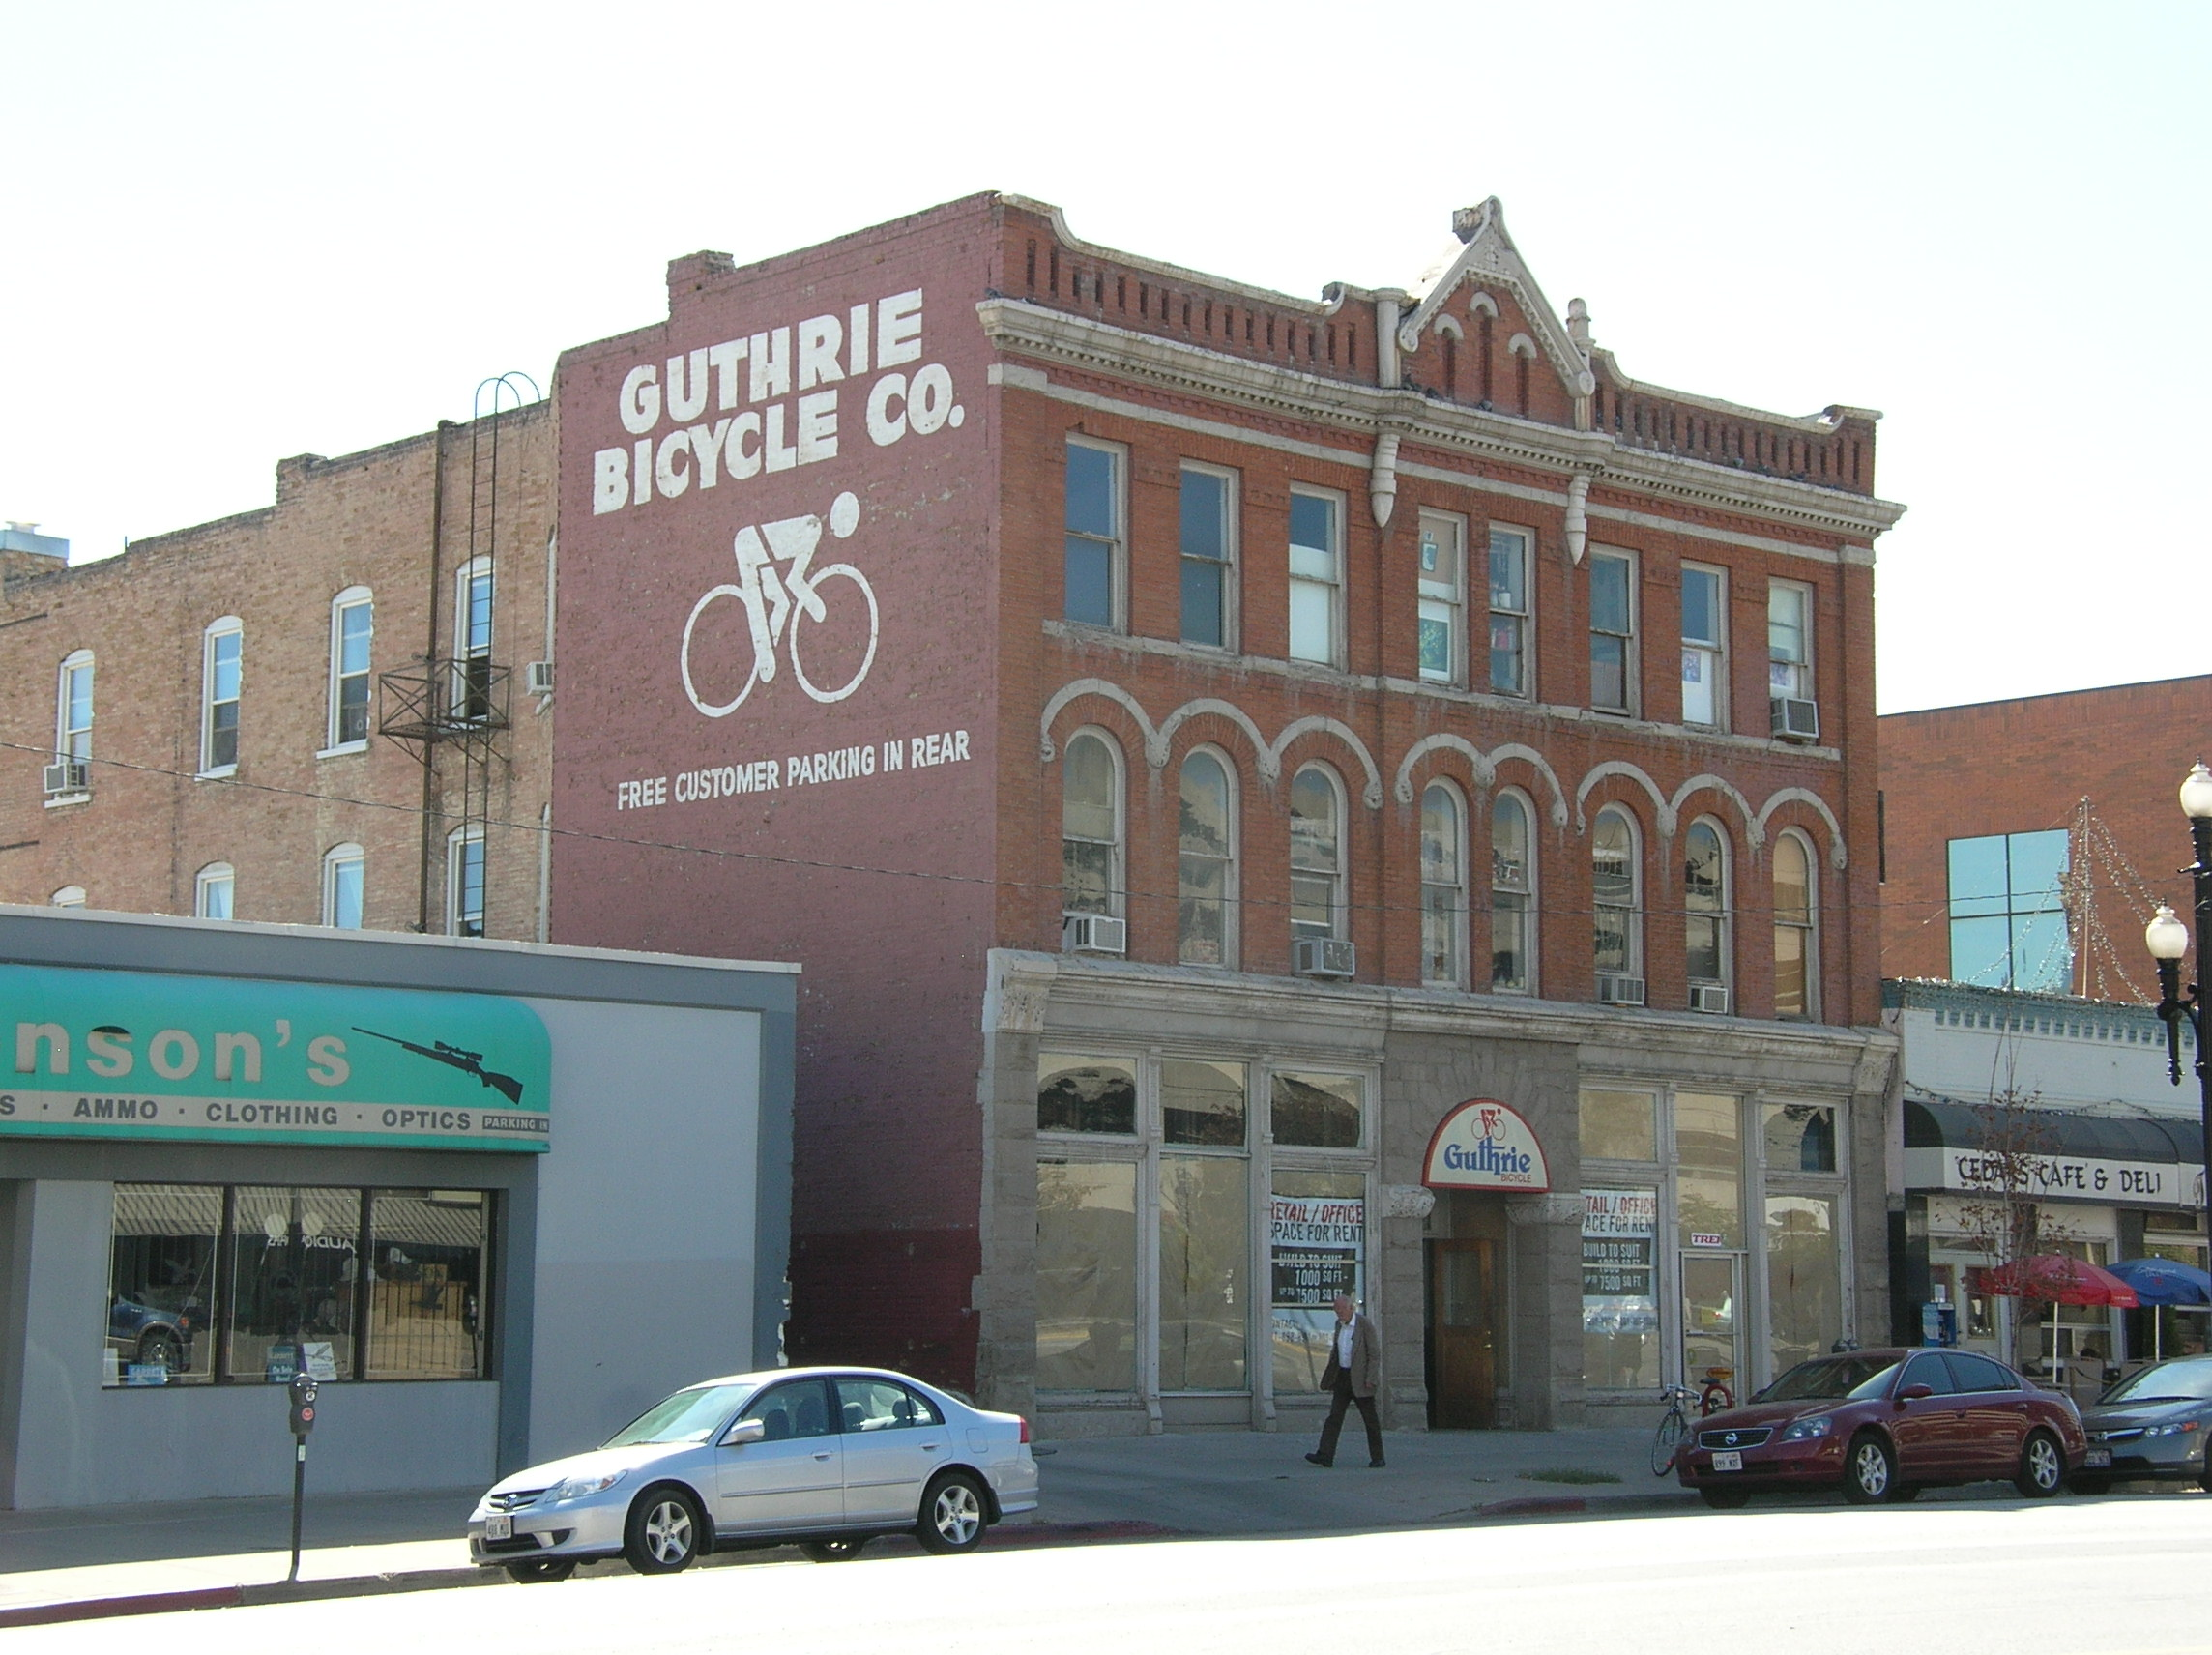 Guthrie Bicycles: Called the building home from the 1930s to 2011.